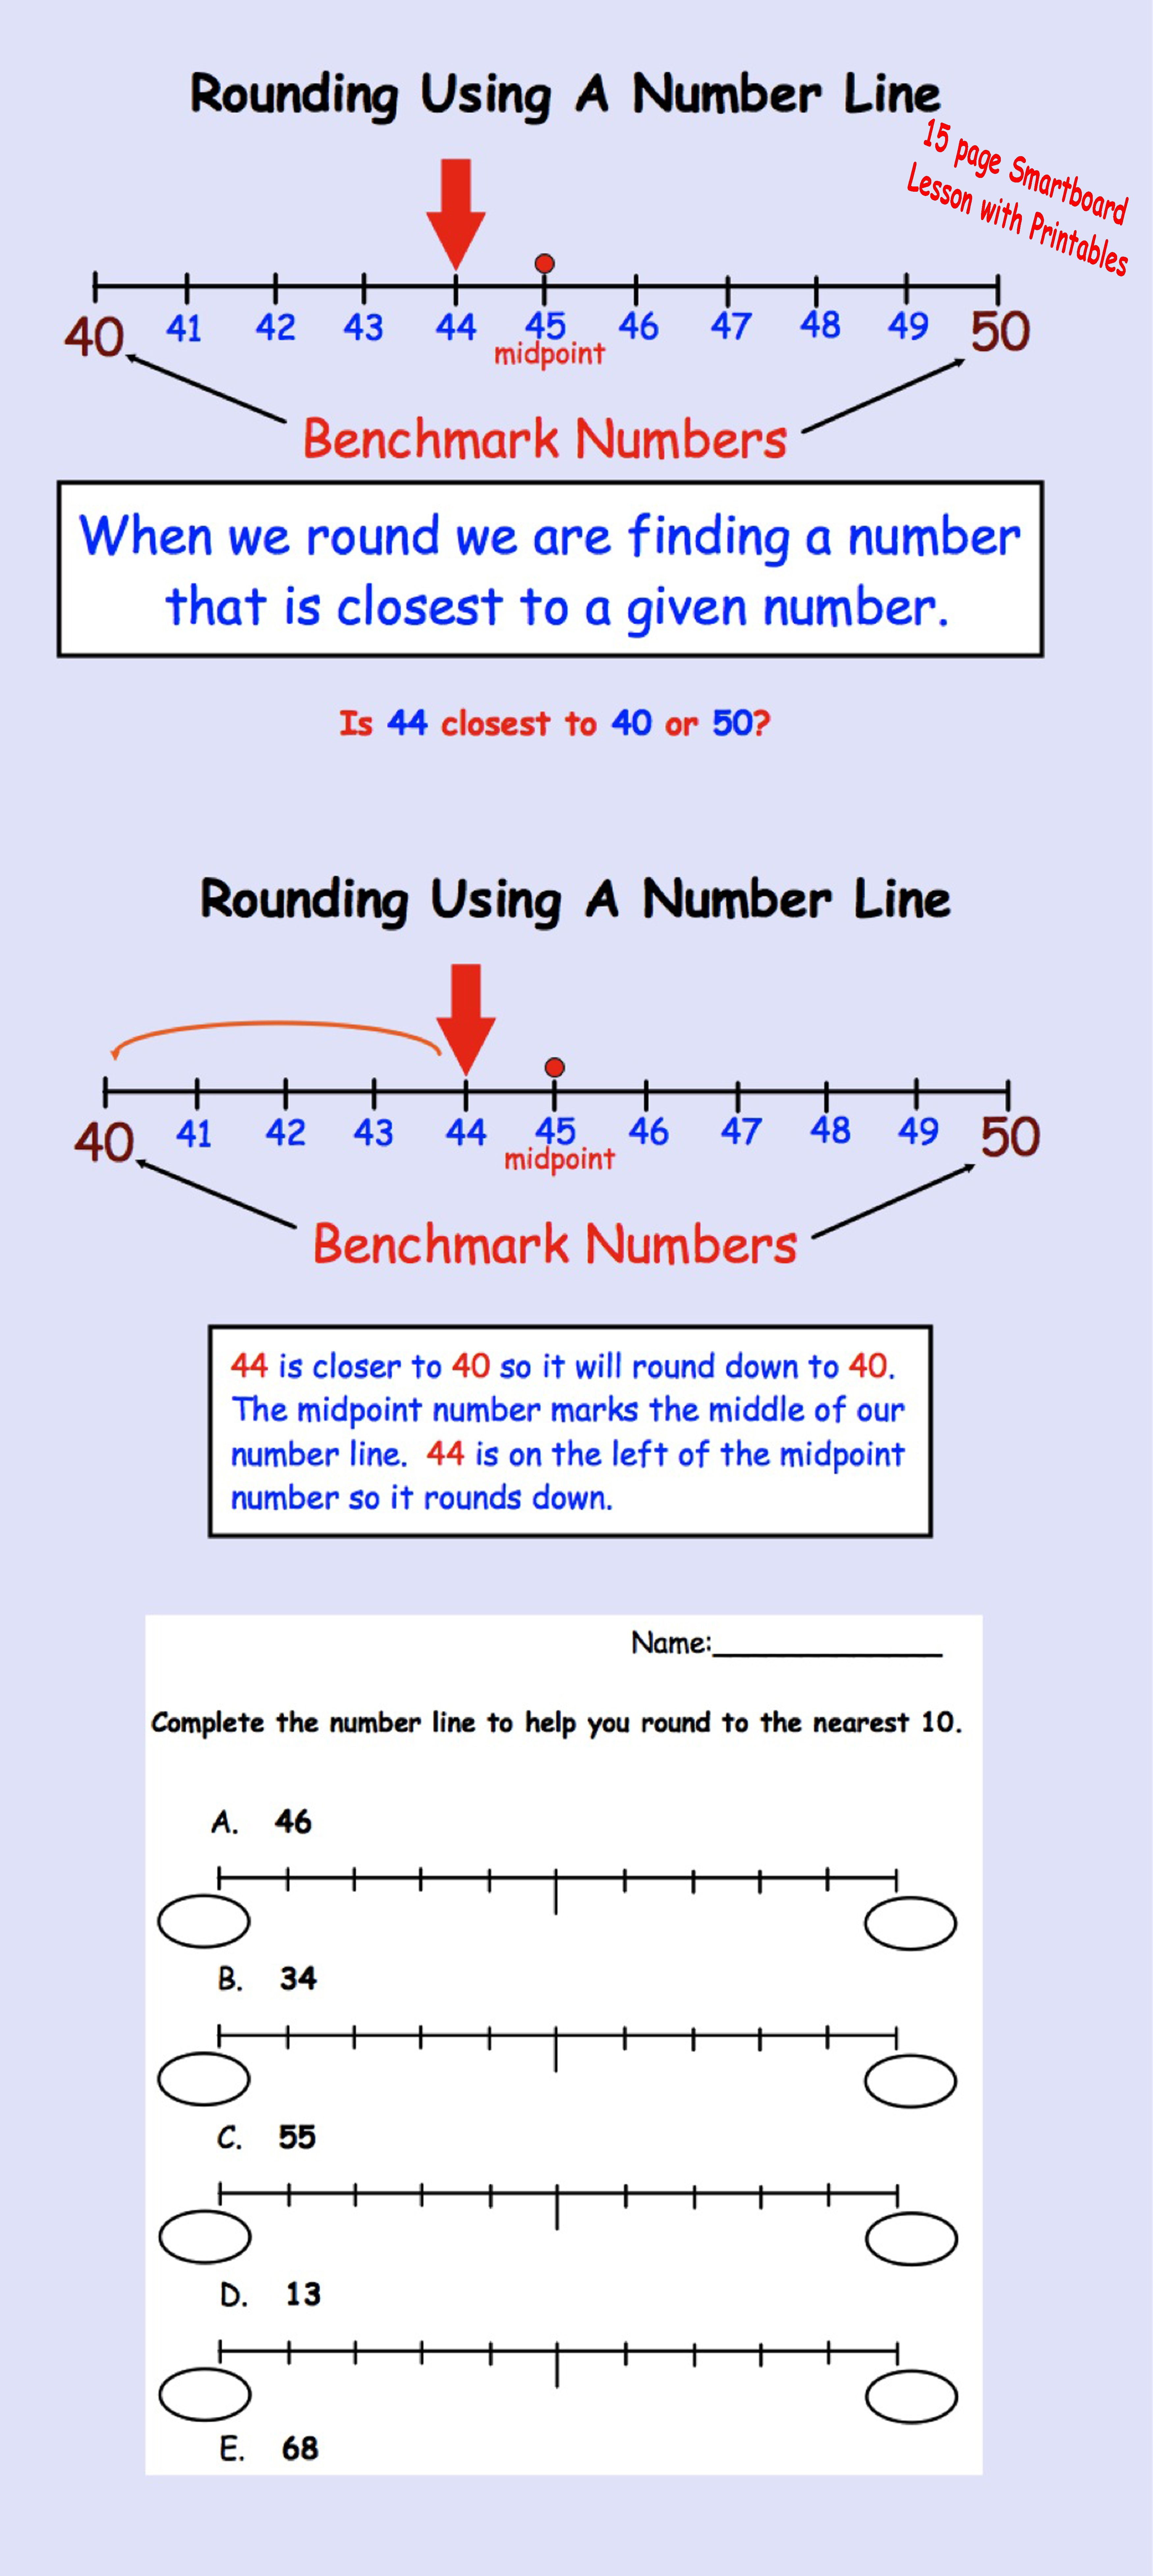 Rounding Using A Number Line Interactive Smartboard Lesson